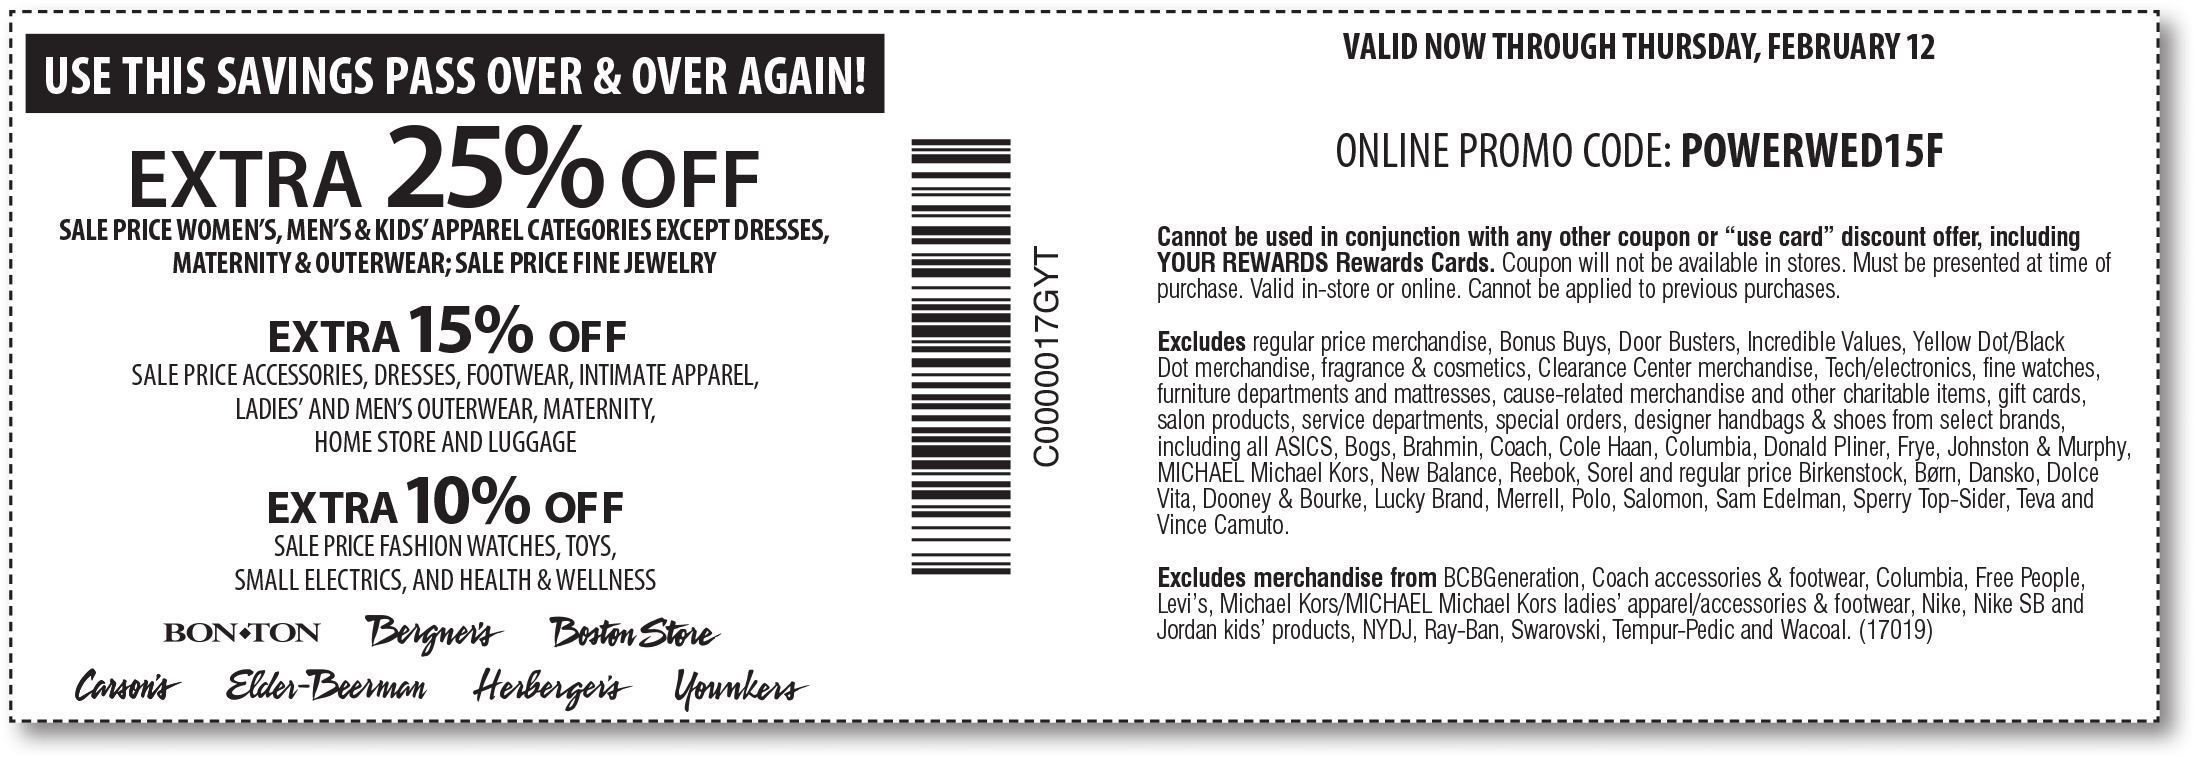 Bon Ton Coupon October 2016 Extra 25% off sale apparel at Carsons, Bon Ton & sister stores, or online via promo code POWERWED15F